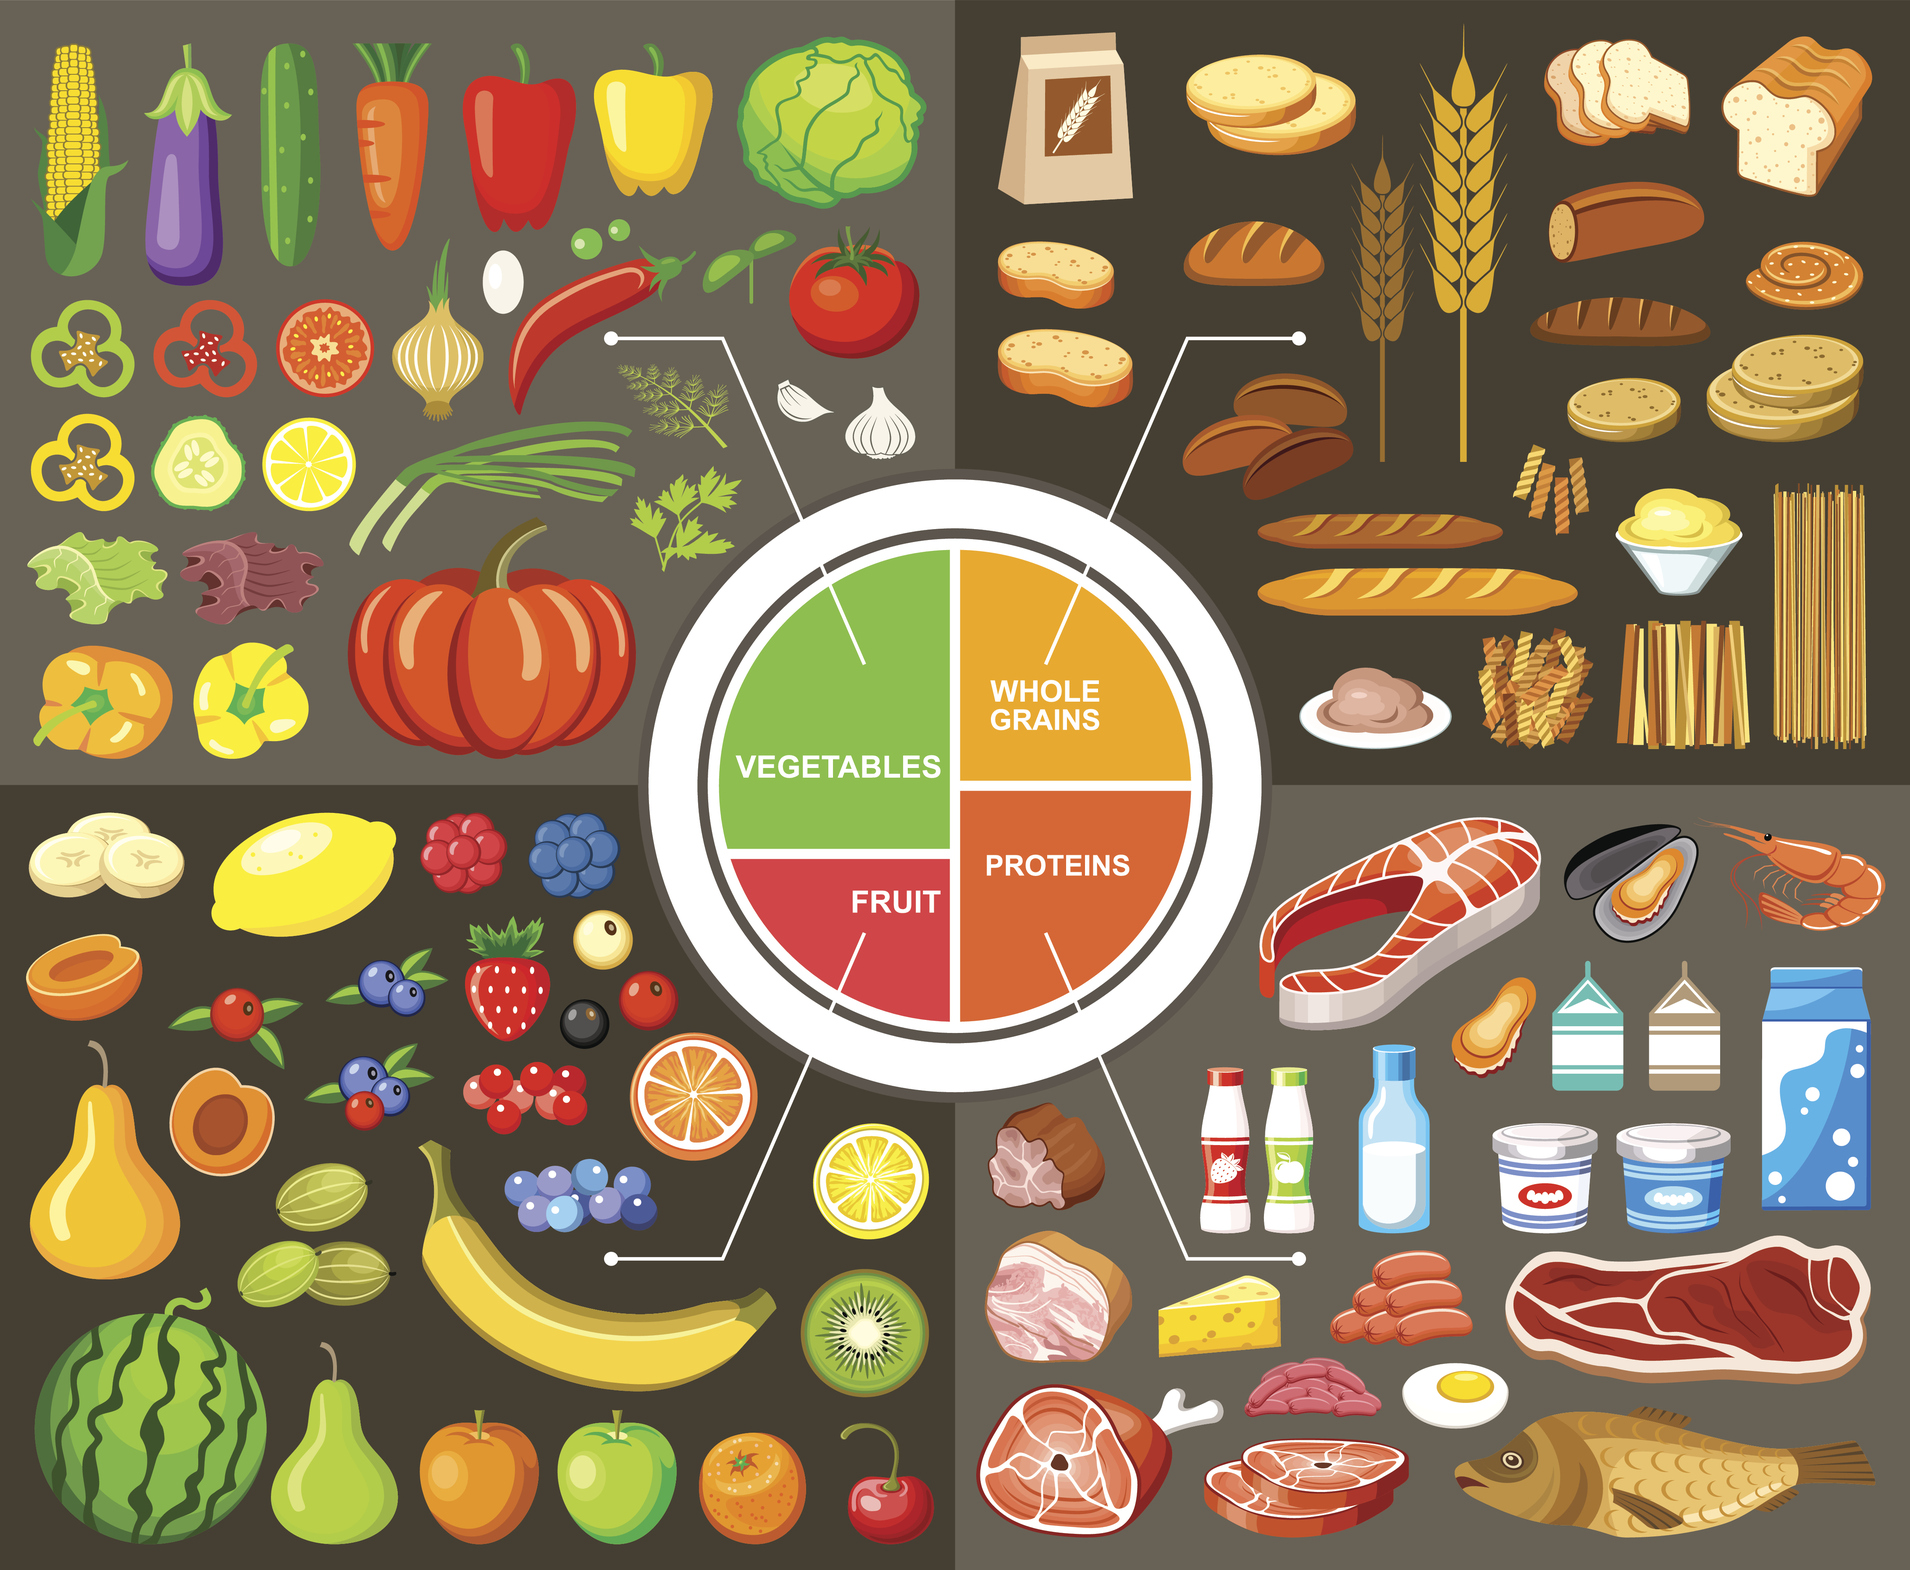 Myplate Mywins Series Helps With Healthy Eating